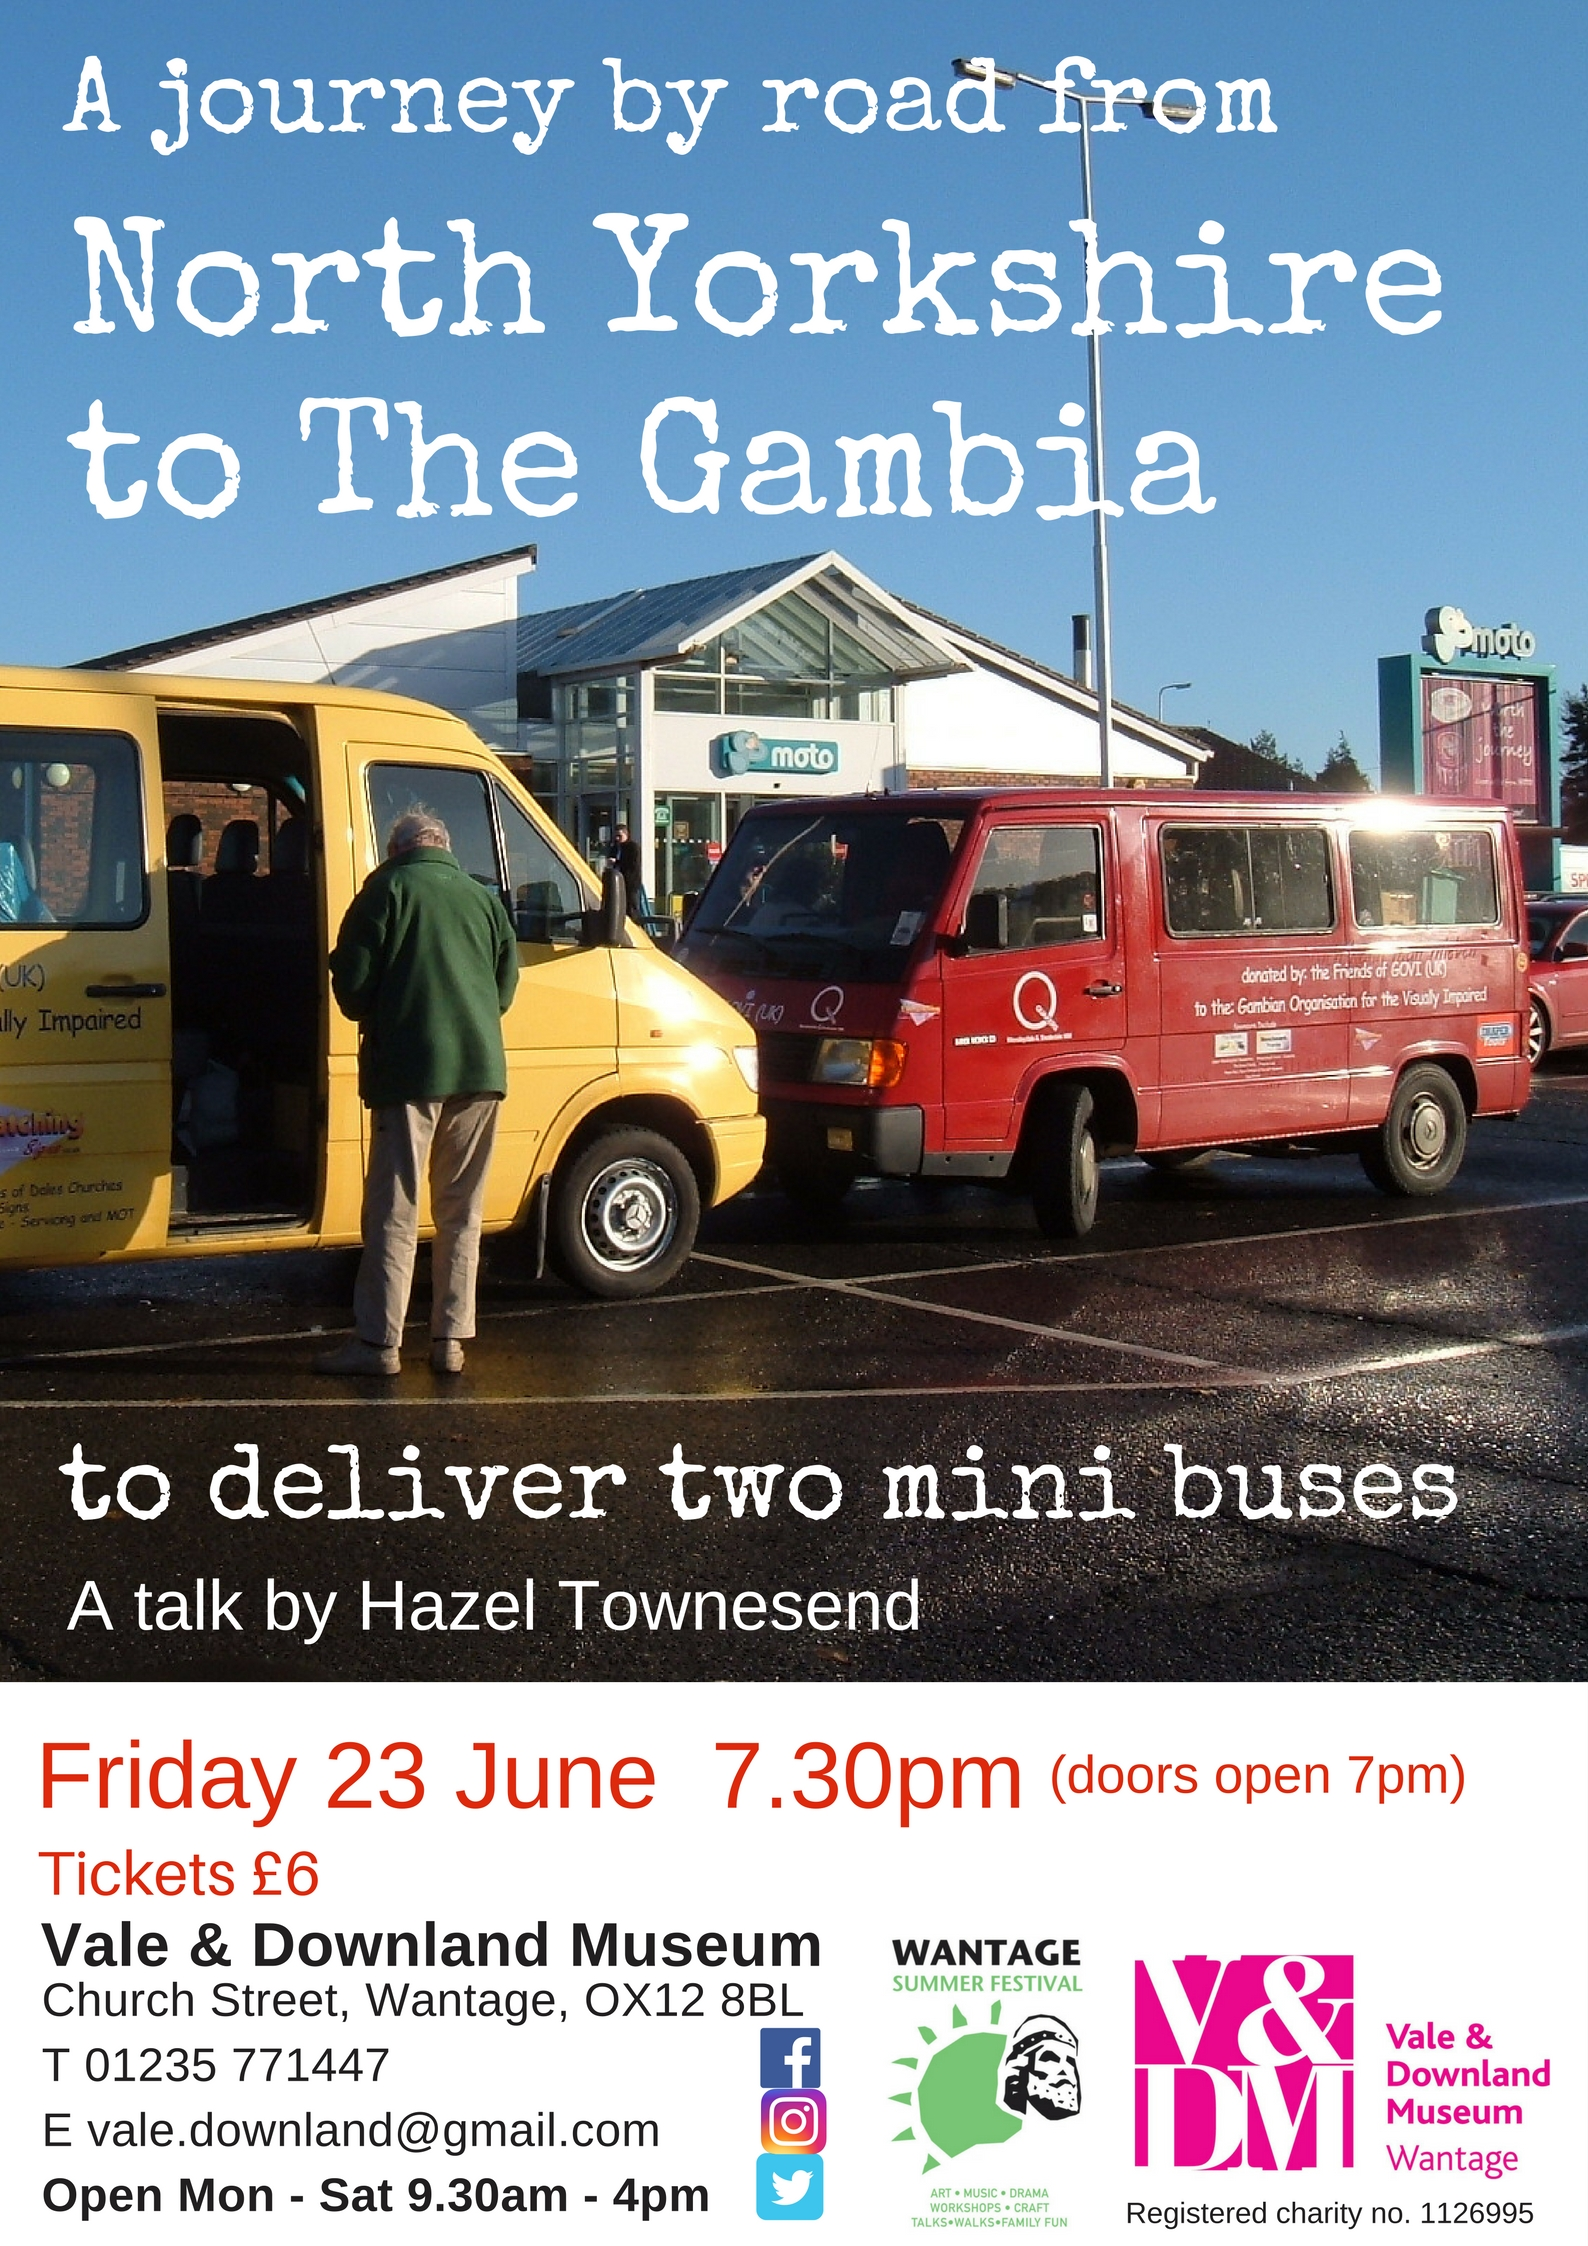 A Journey by road from North Yorkshire to The Gambia to deliver 2 mini buses